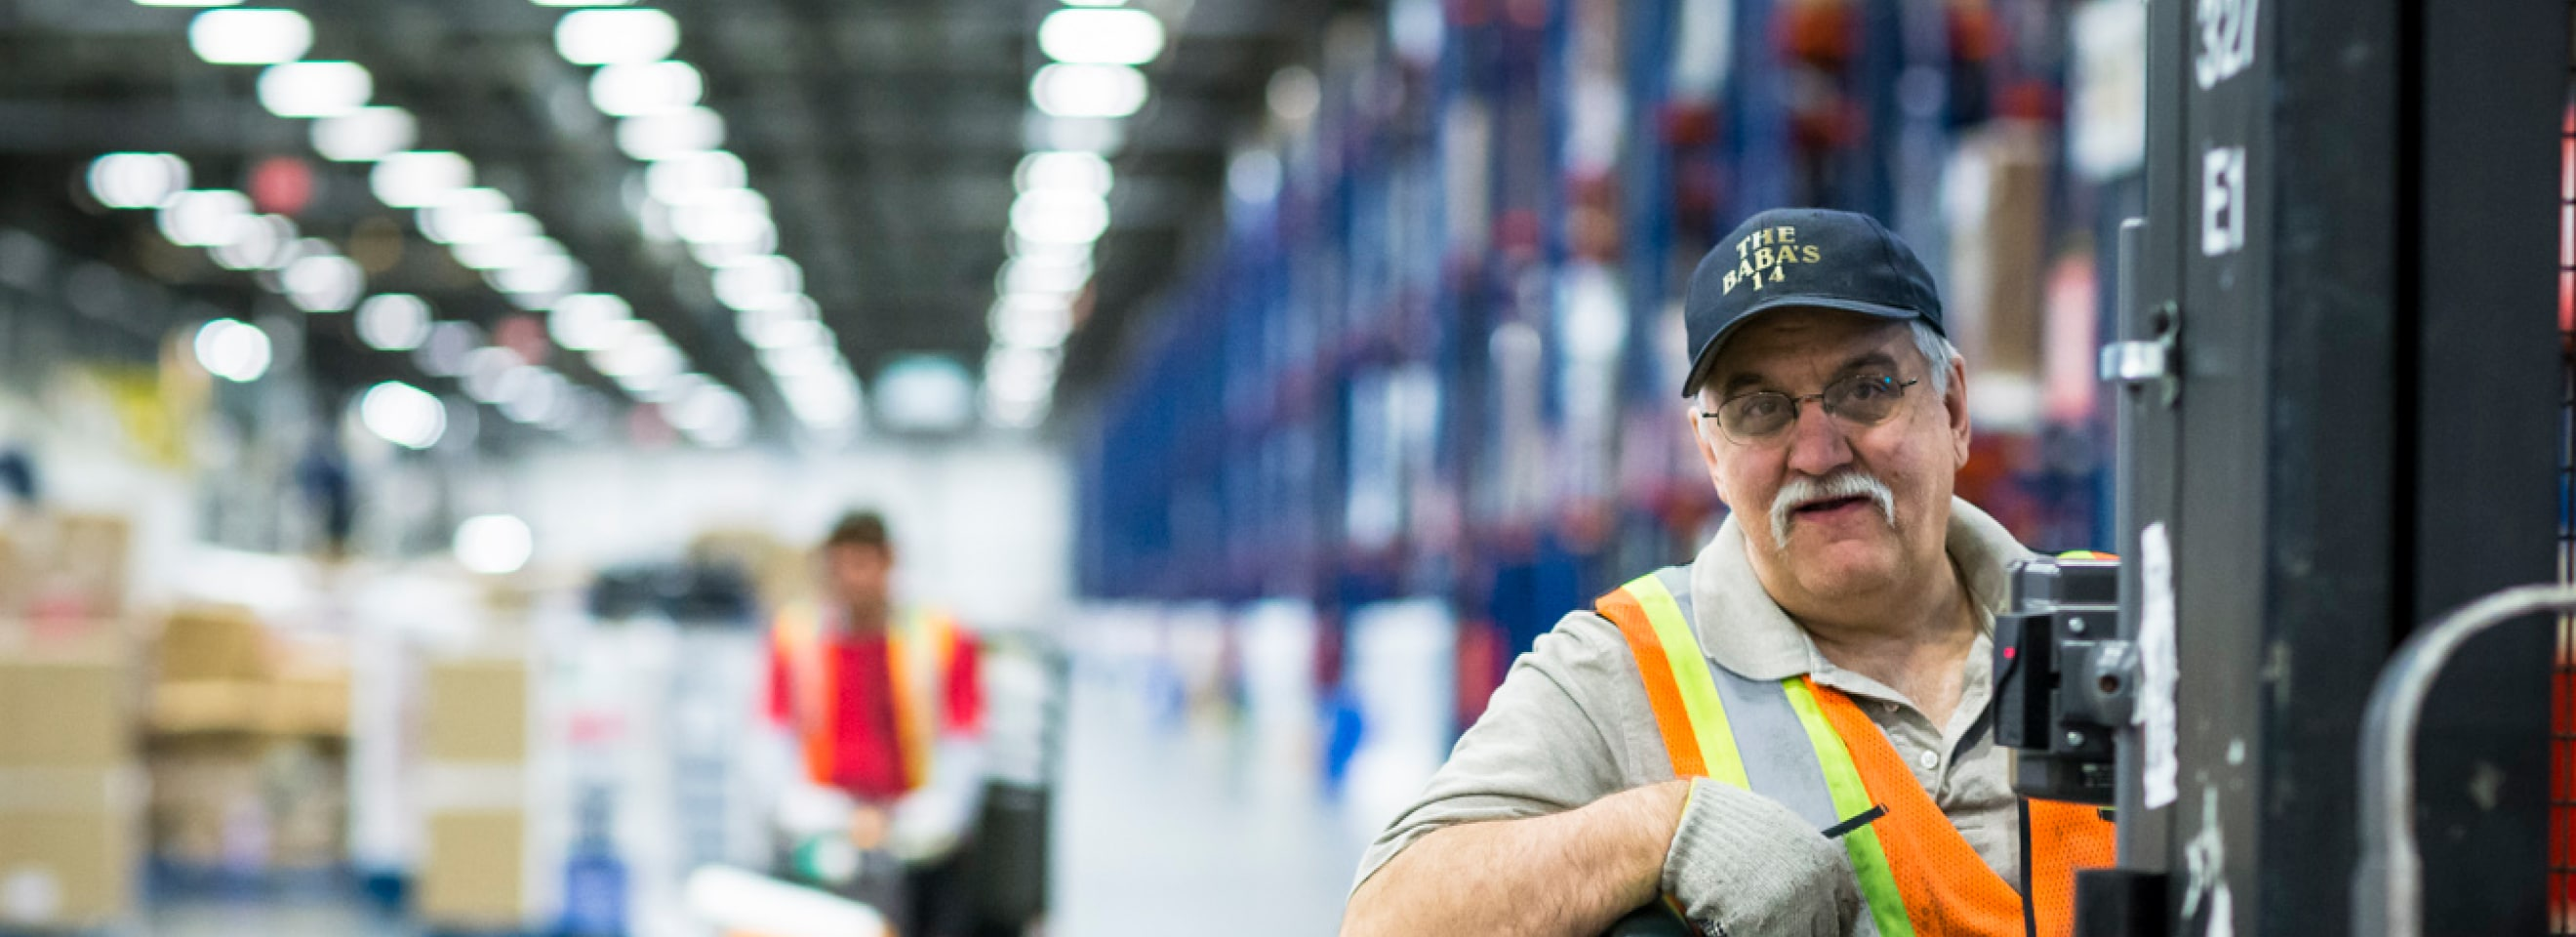 Employee with safety vest working in a warehouse.